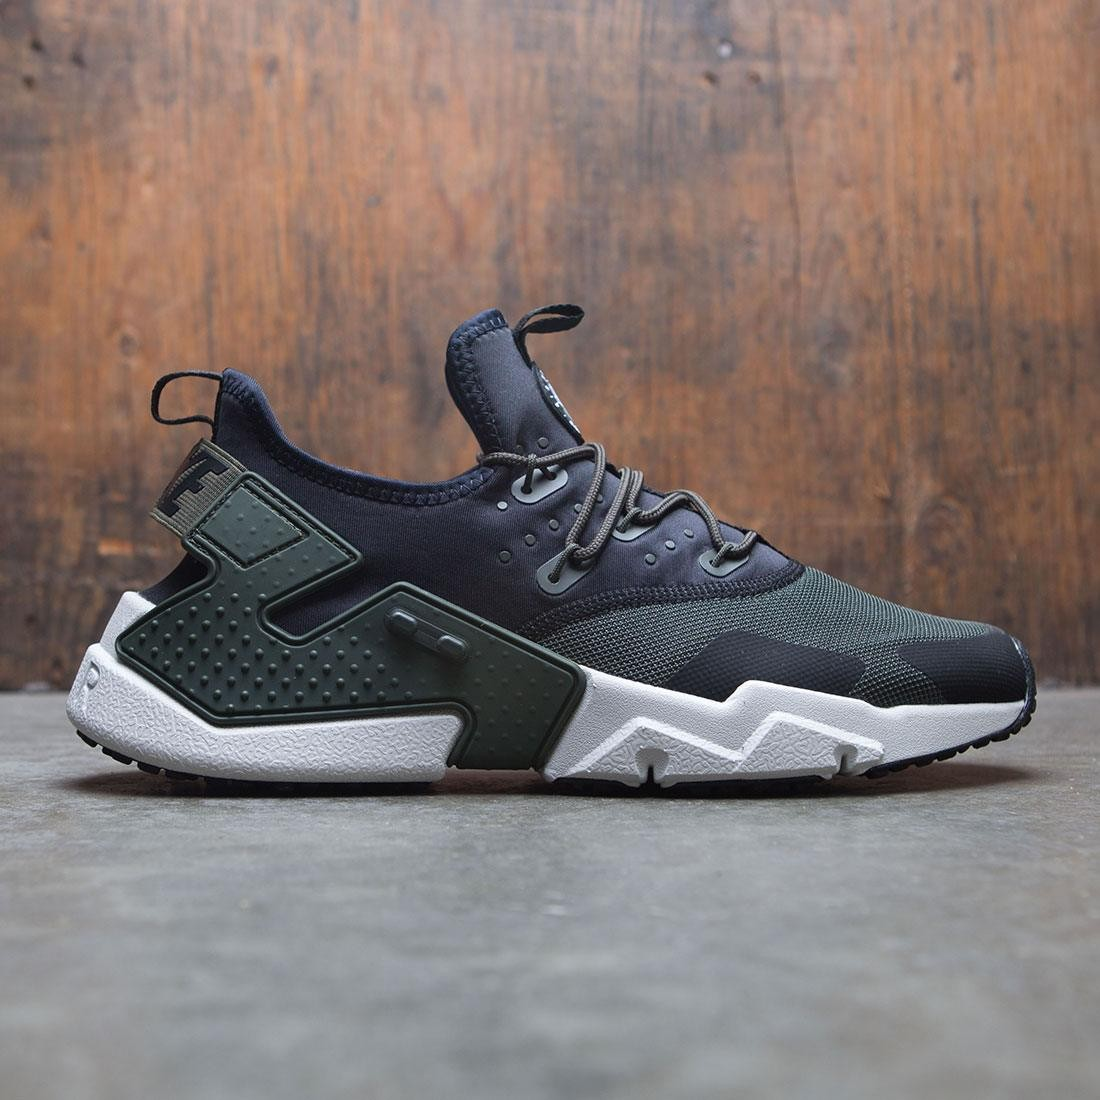 c71a26cf0e4d2 nike men air huarache drift sequoia light bone black white